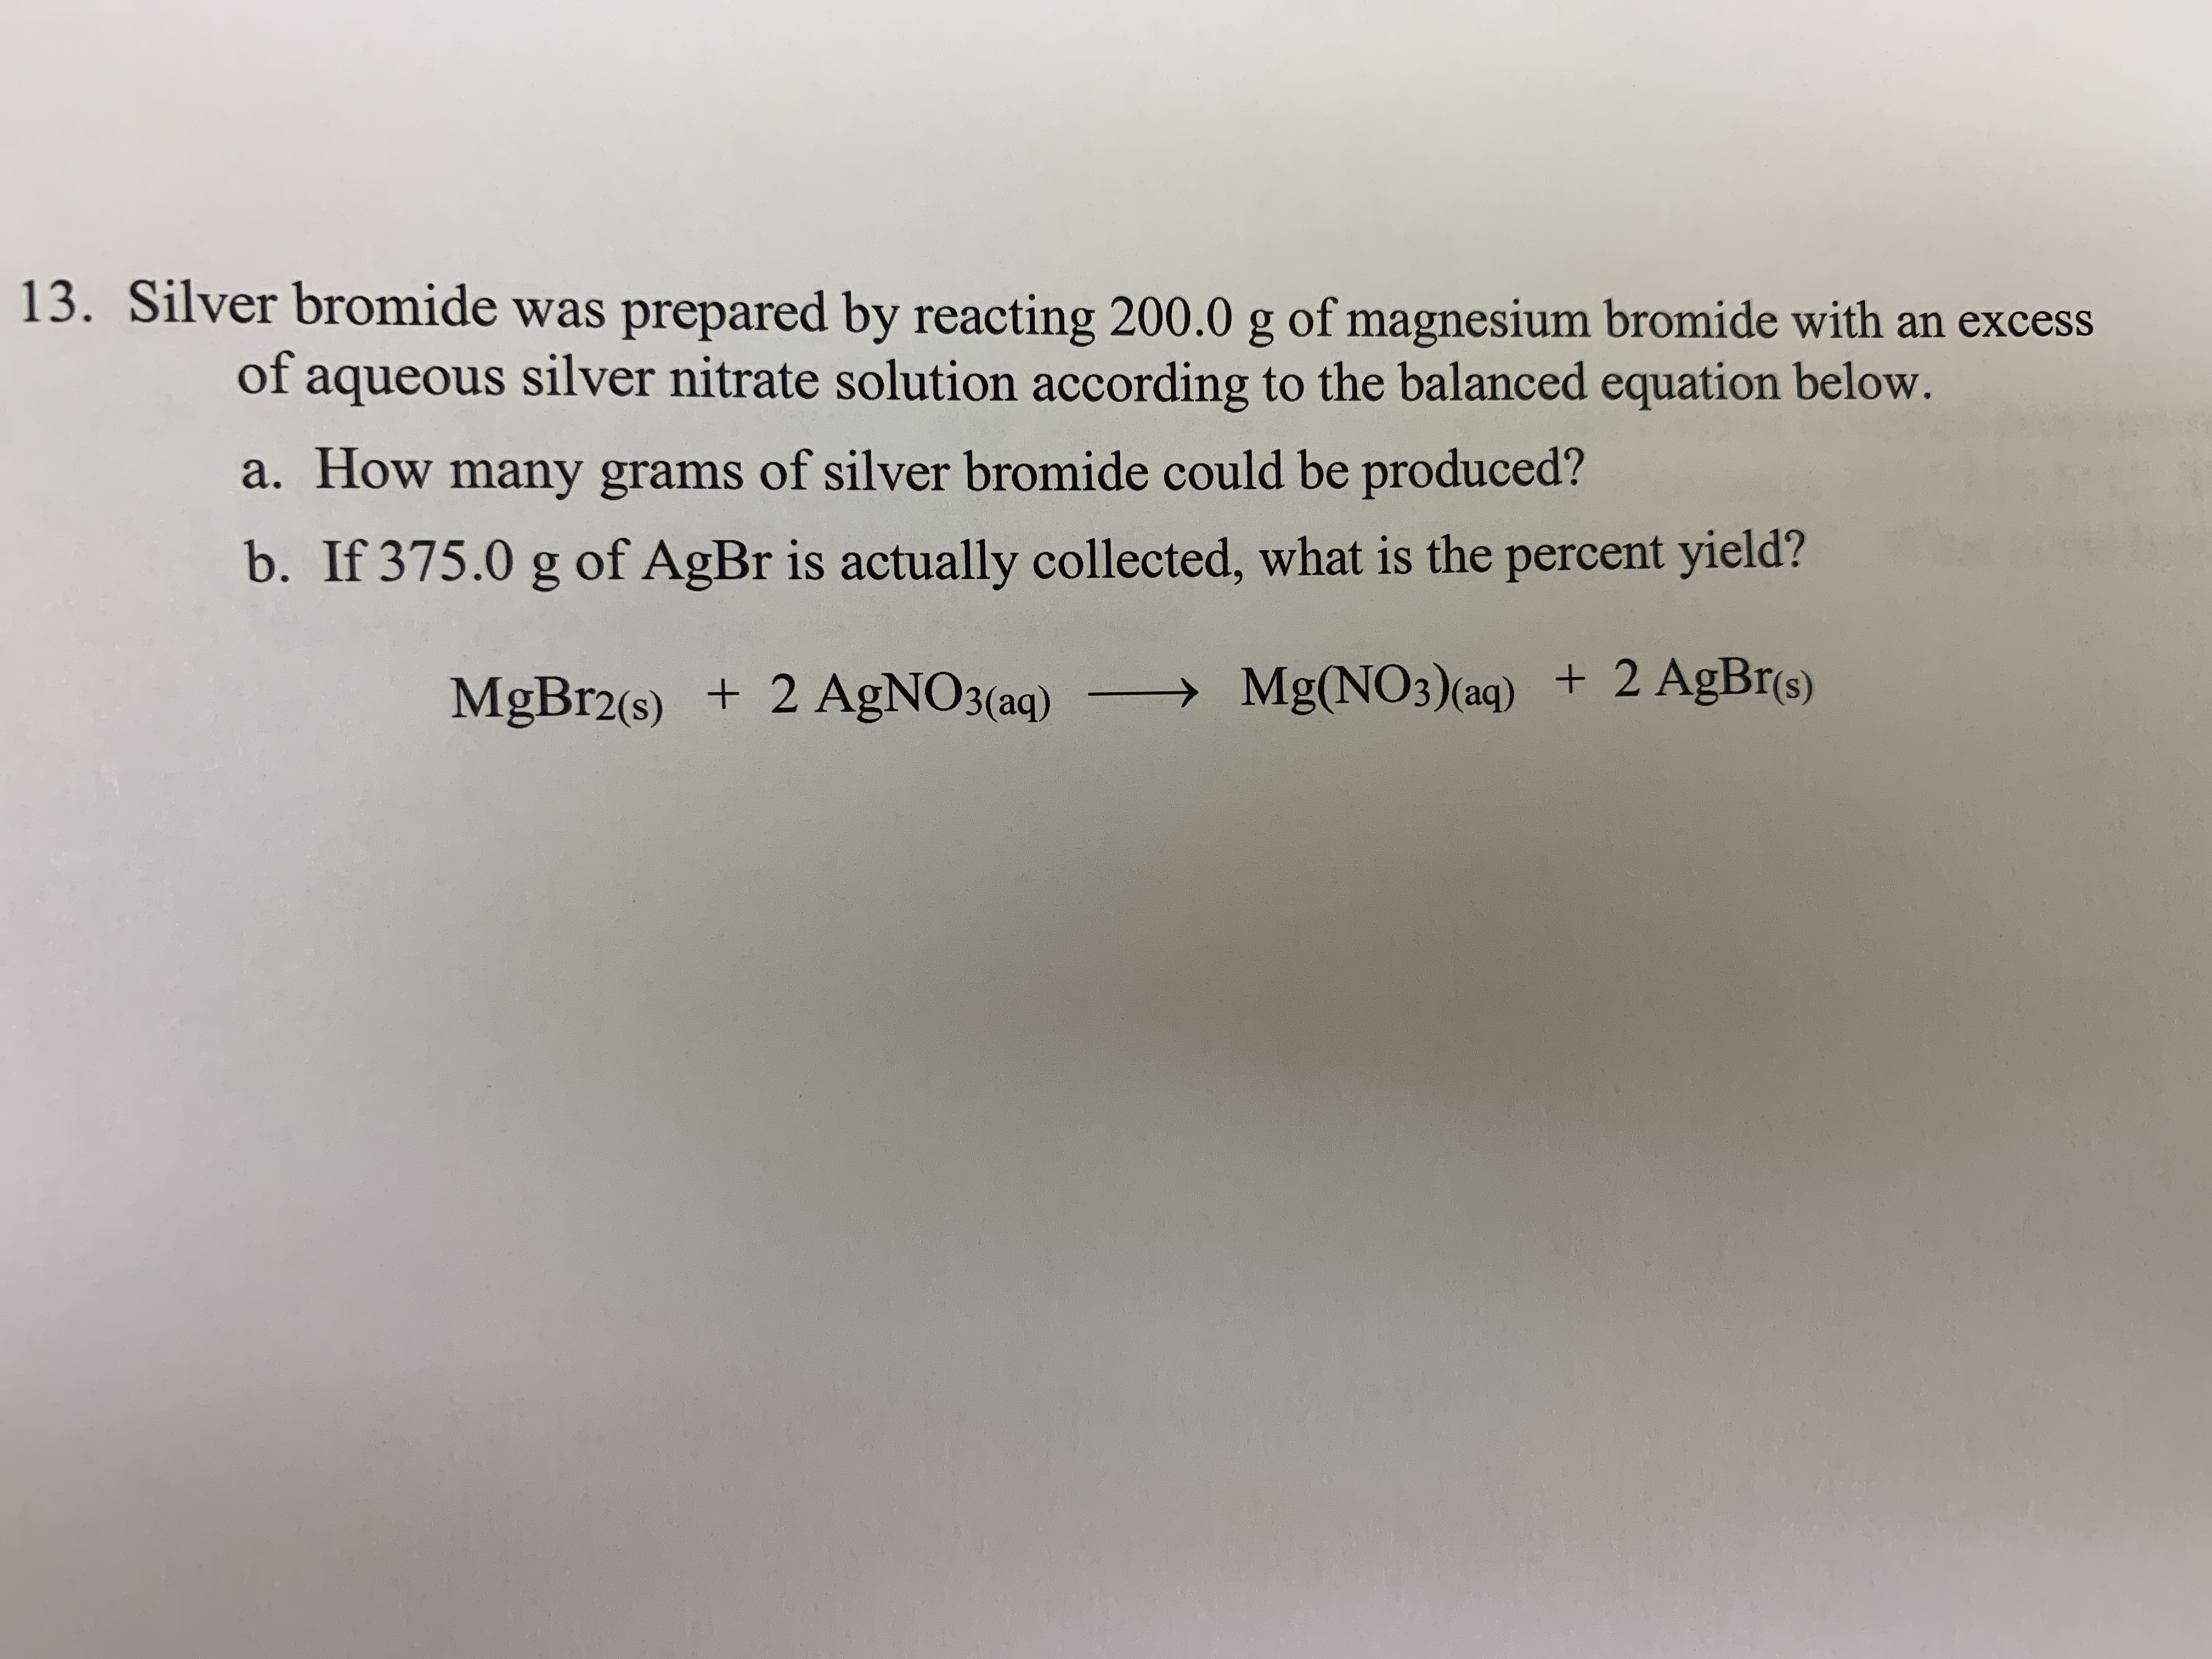 13. Silver bromide was prepared by reacting 200.0 g of magnesium bromide with an excess of aqueous silver nitrate solution according to the balanced equation below. a. How many grams of silver bromide could be produced? b. If 375.0 g of AgBr is actually collected, what is the percent yield? MgBr2(s) 2 AgNO3(aq) >Mg(NO3)(aq) 2 AgBr(s)